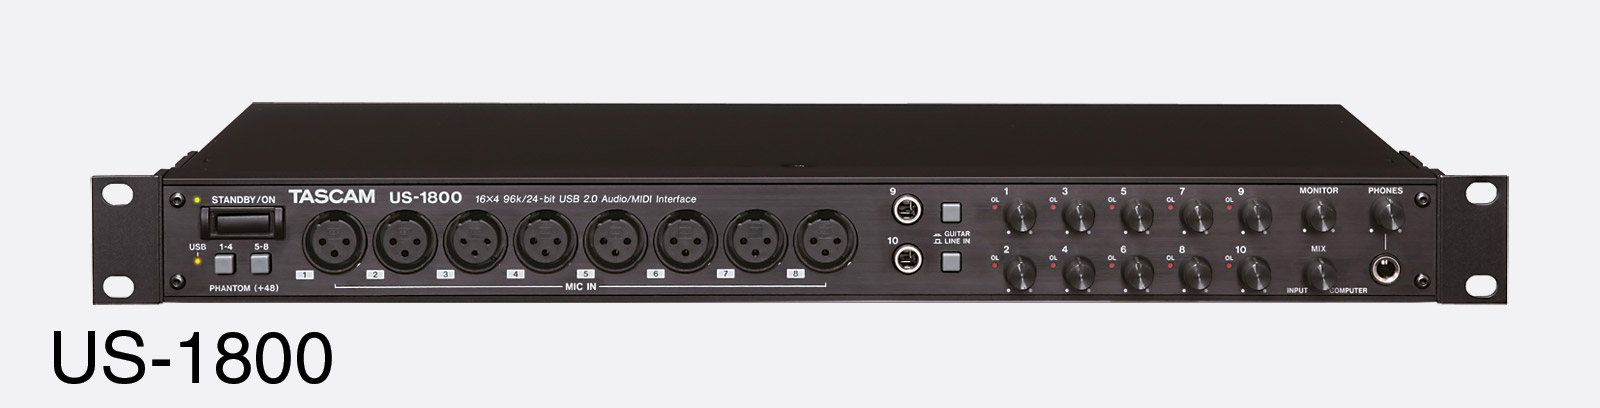 tascam us 1800 usb audio interface 8x mic 6x line in s pdif midi i o 4x line monitor out. Black Bedroom Furniture Sets. Home Design Ideas